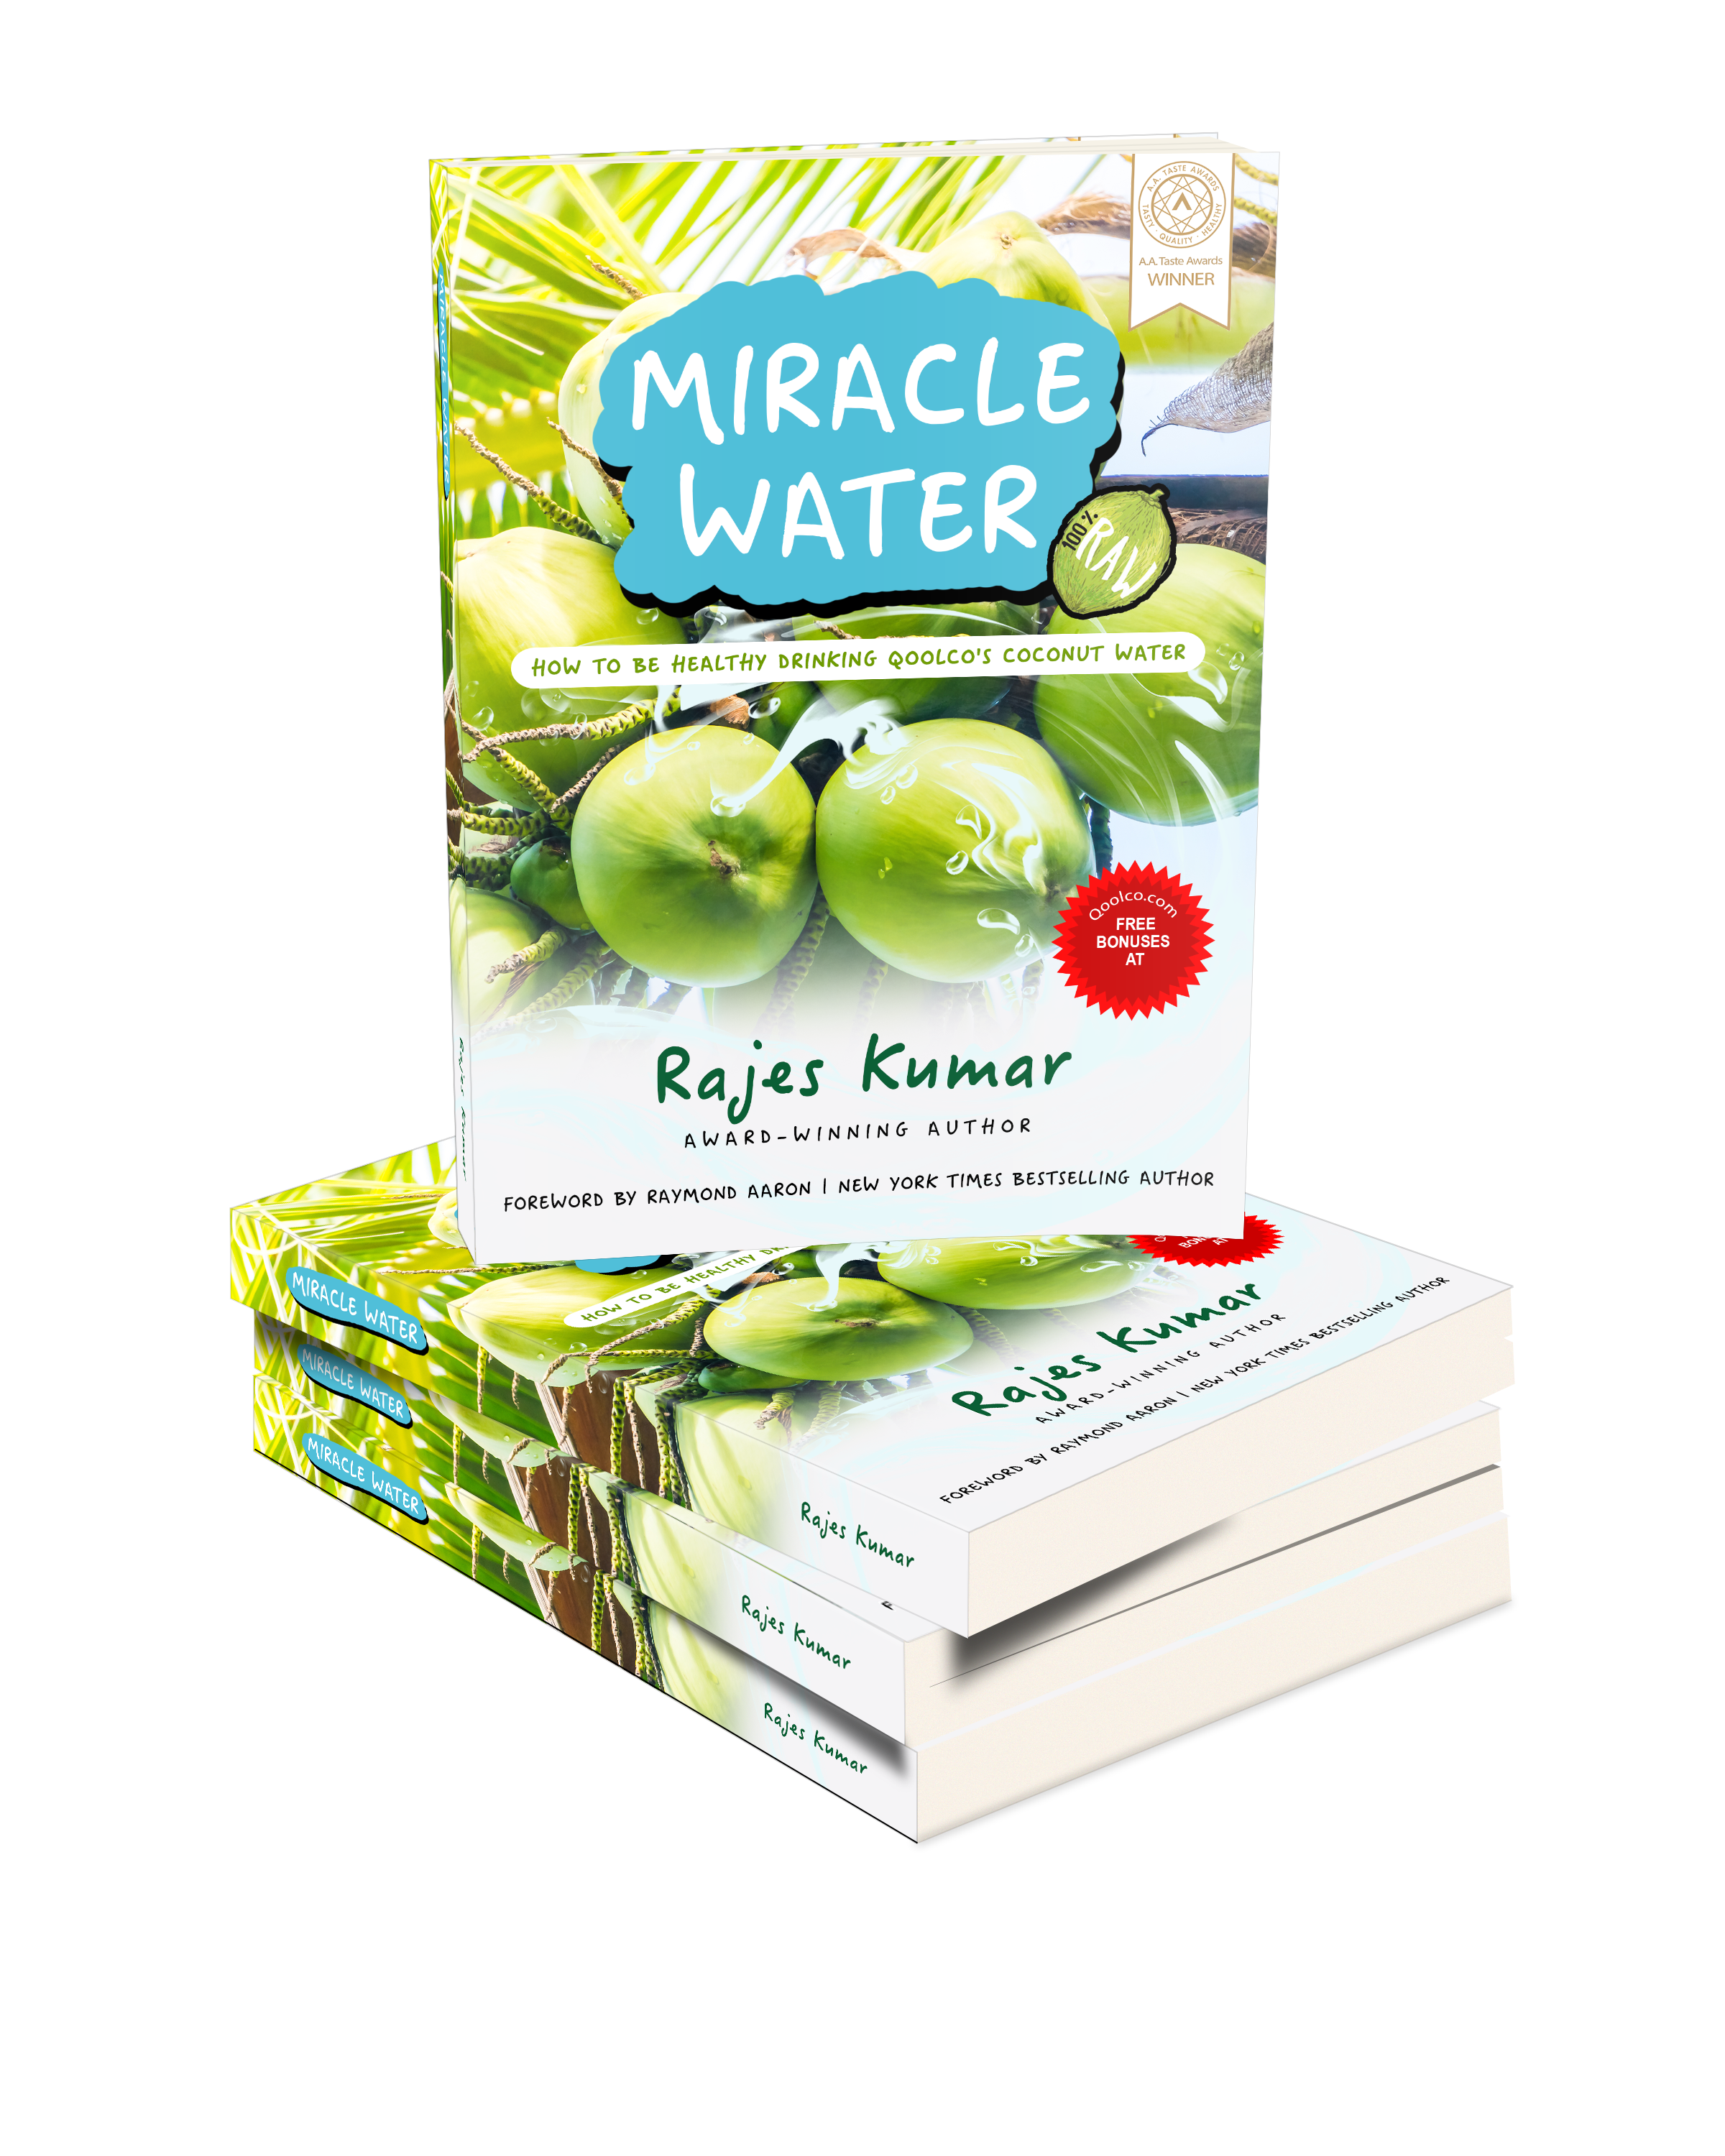 MIRACLE WATER: How to be Healthy Drinking Qoolco's Coconut Water